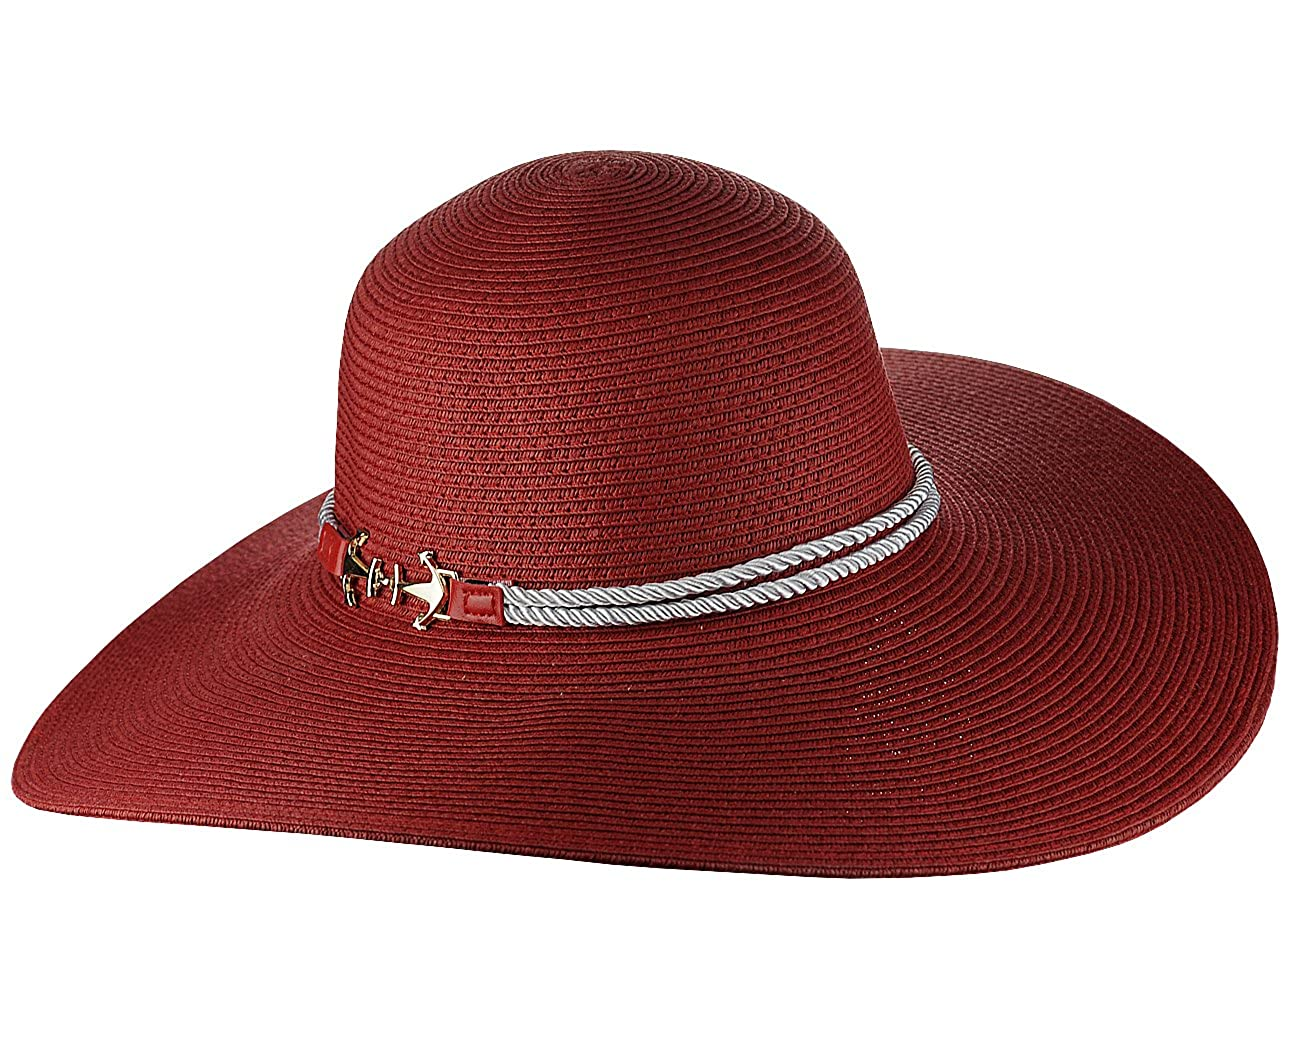 Something Special Women's Nautical Anchor Rope Band Floppy Brim Sun Hat Black